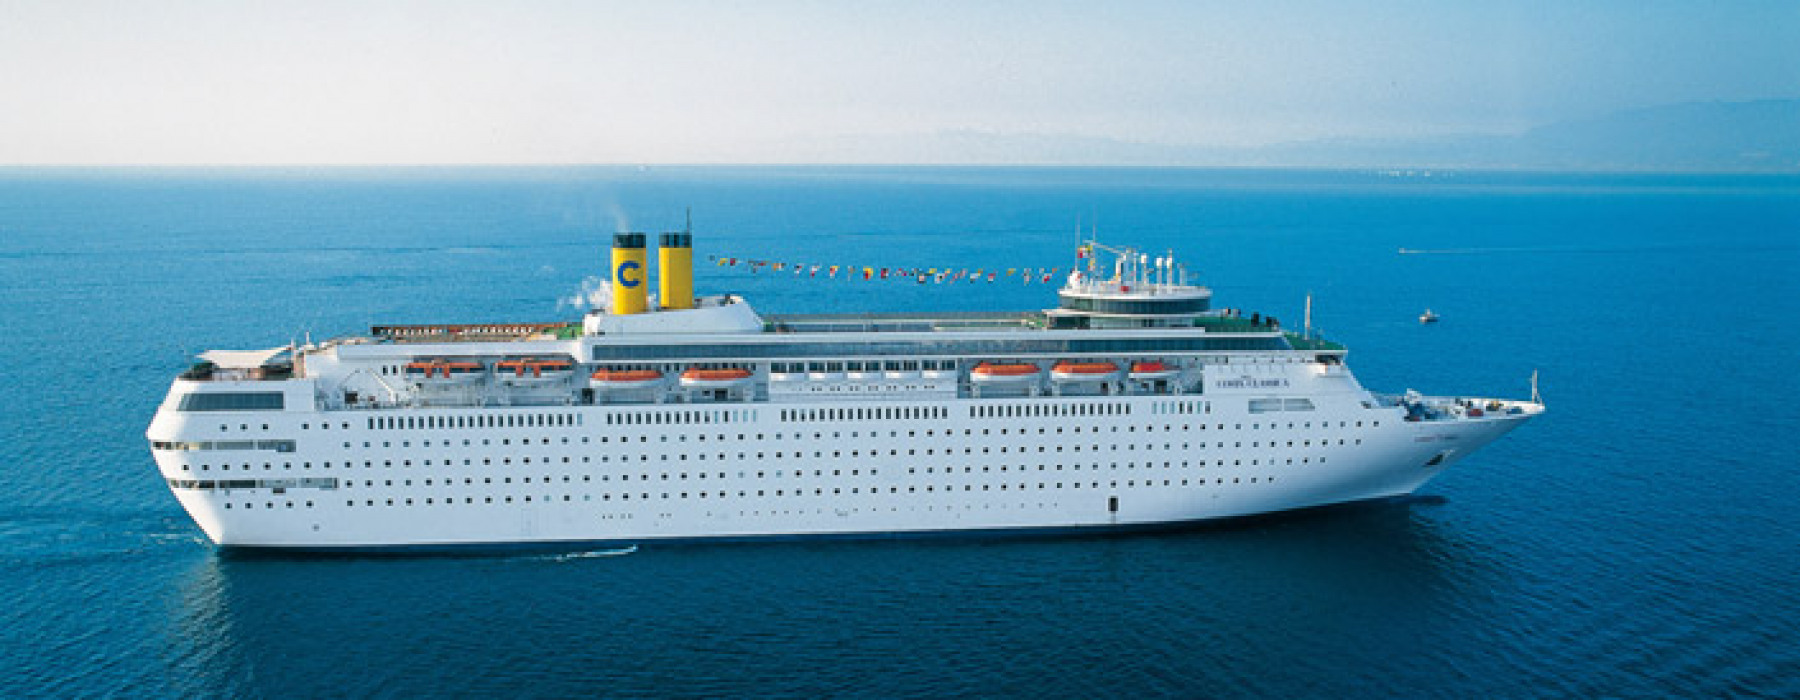 costa cruises Cruise Lines Packages - Infinity Cruises